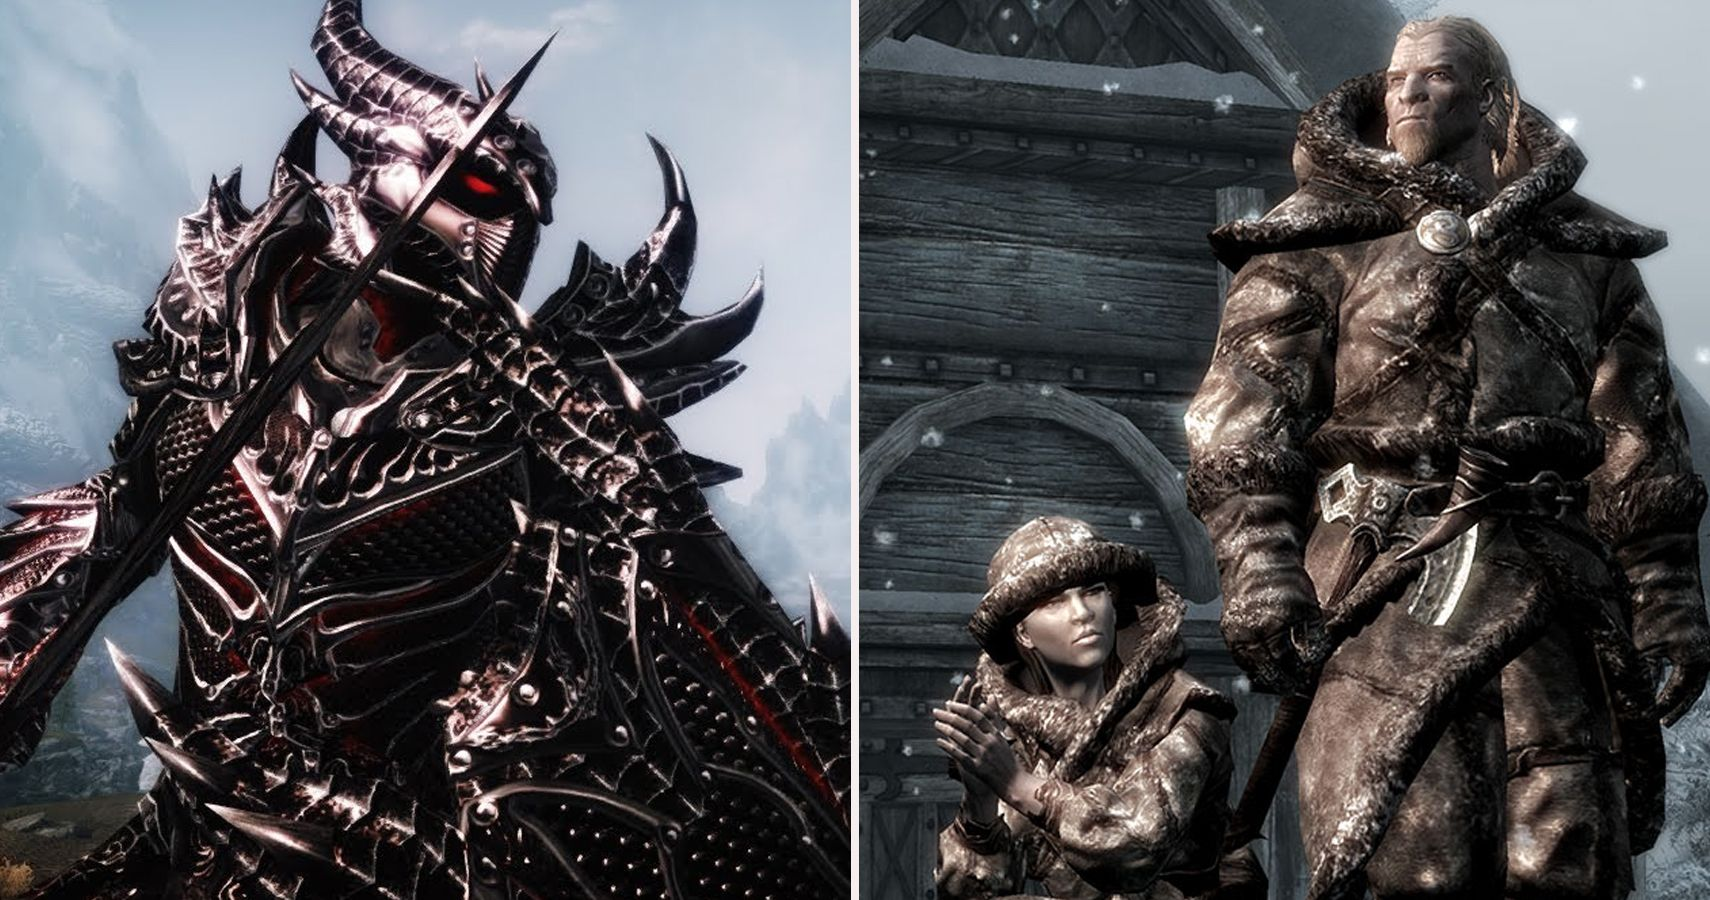 Skyrim: The 8 Best Armor Sets And The 7 Worst | TheGamer